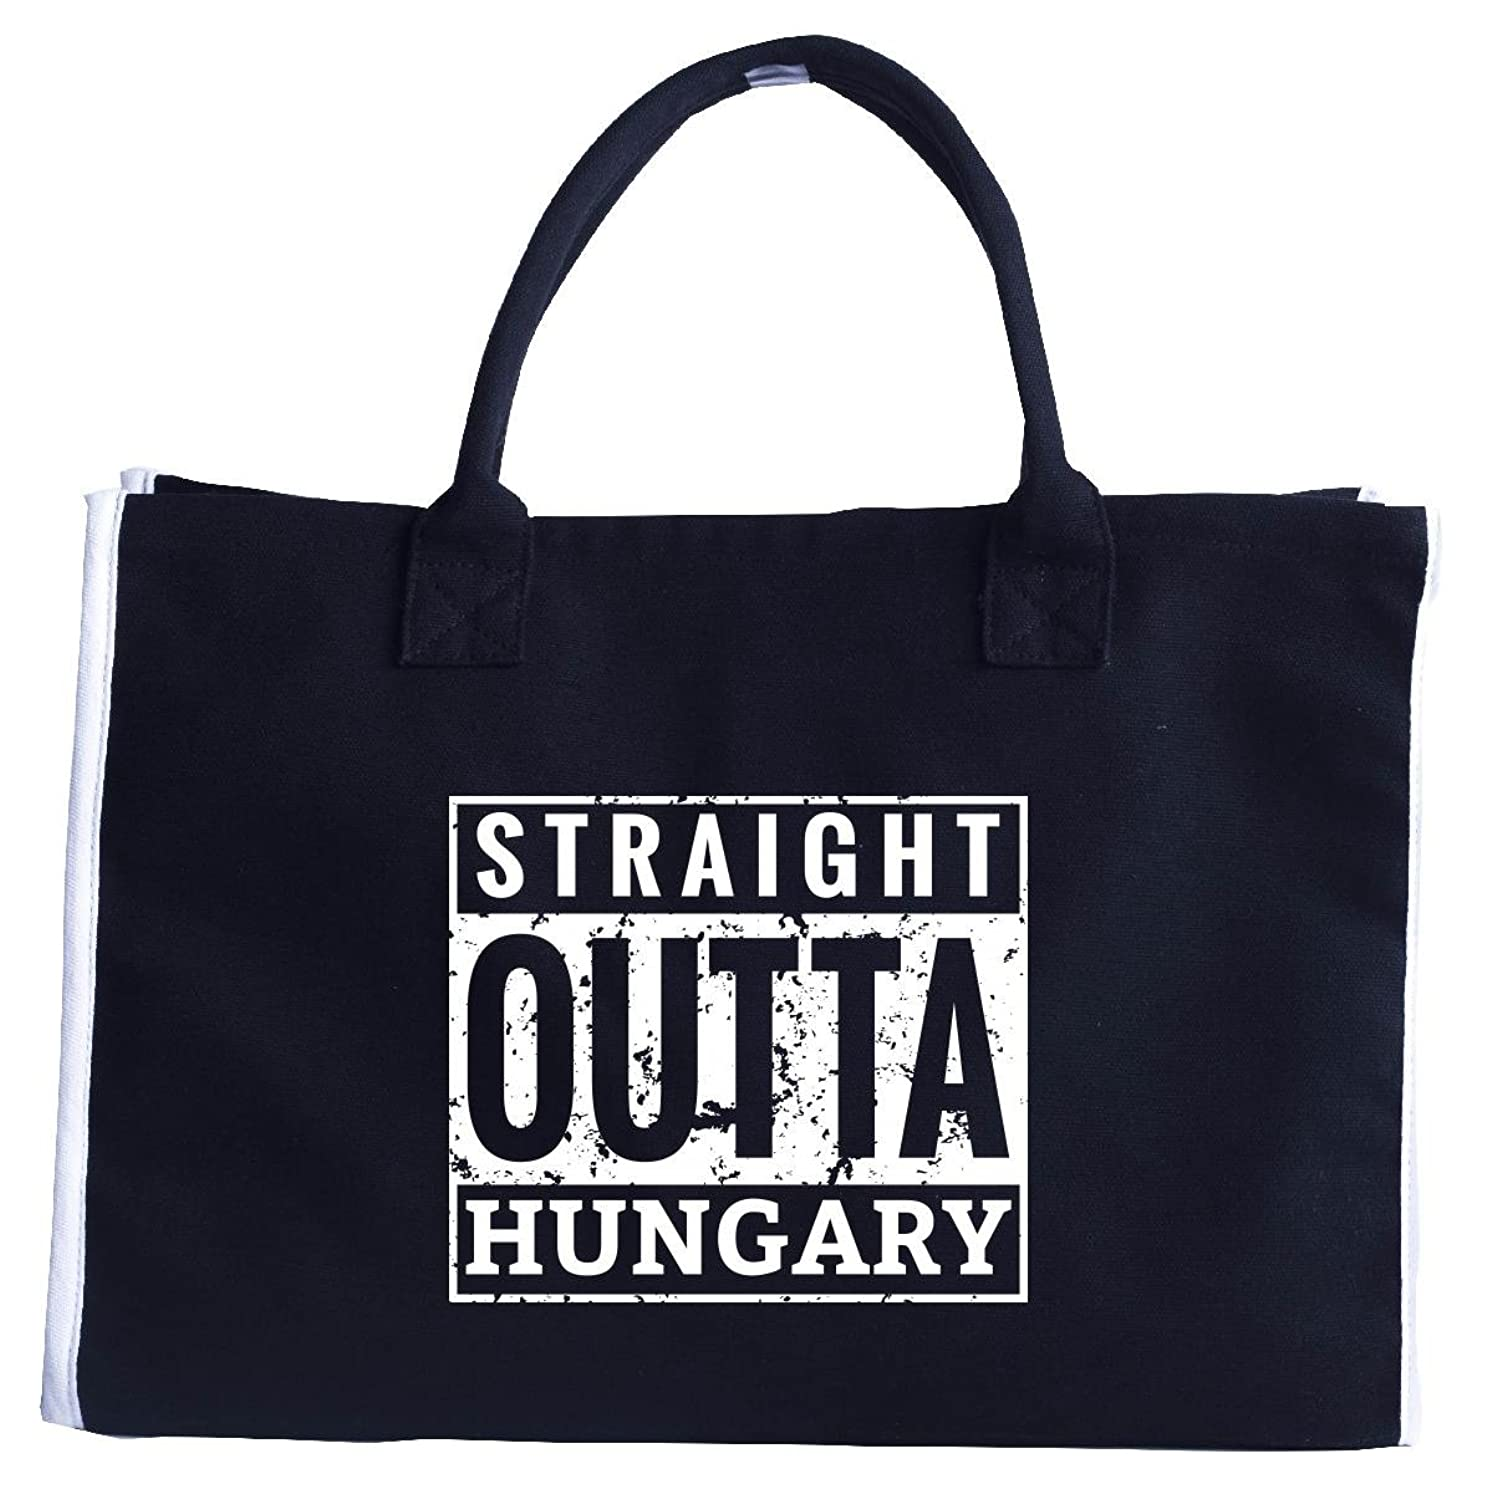 Straight Outta Hungary - Tote Bag